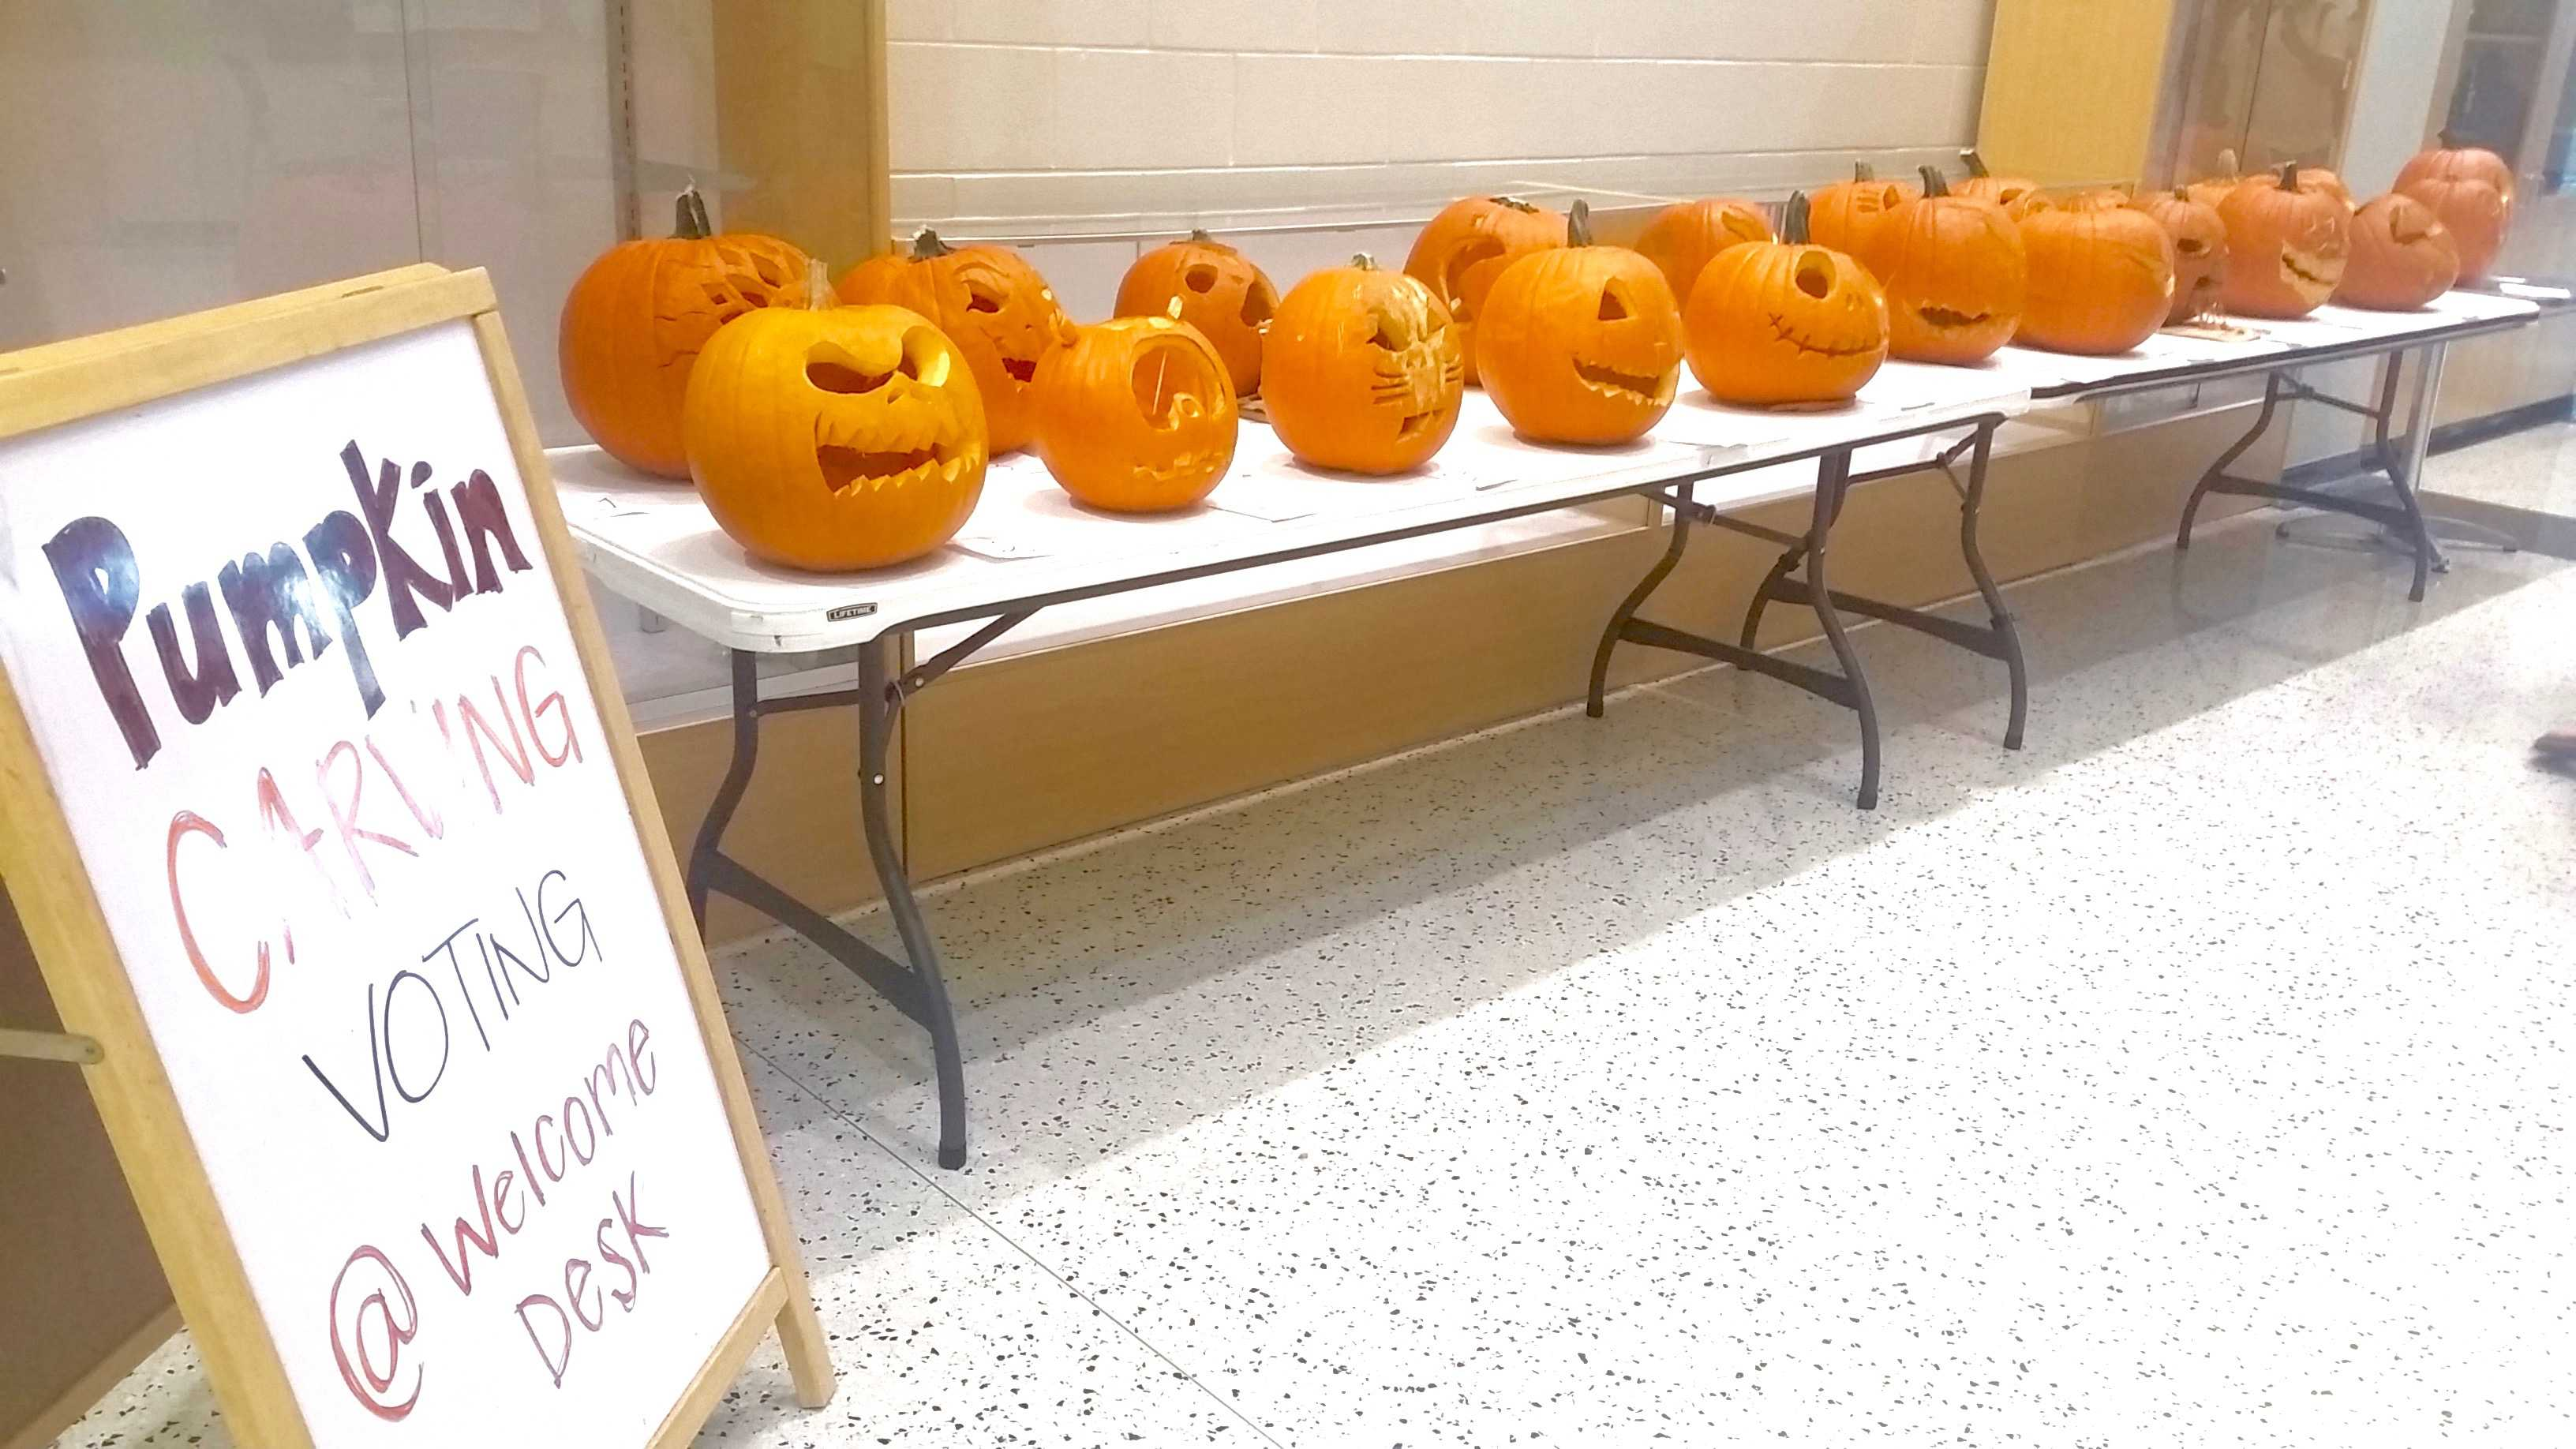 Orange faces appear in wellness center lobby